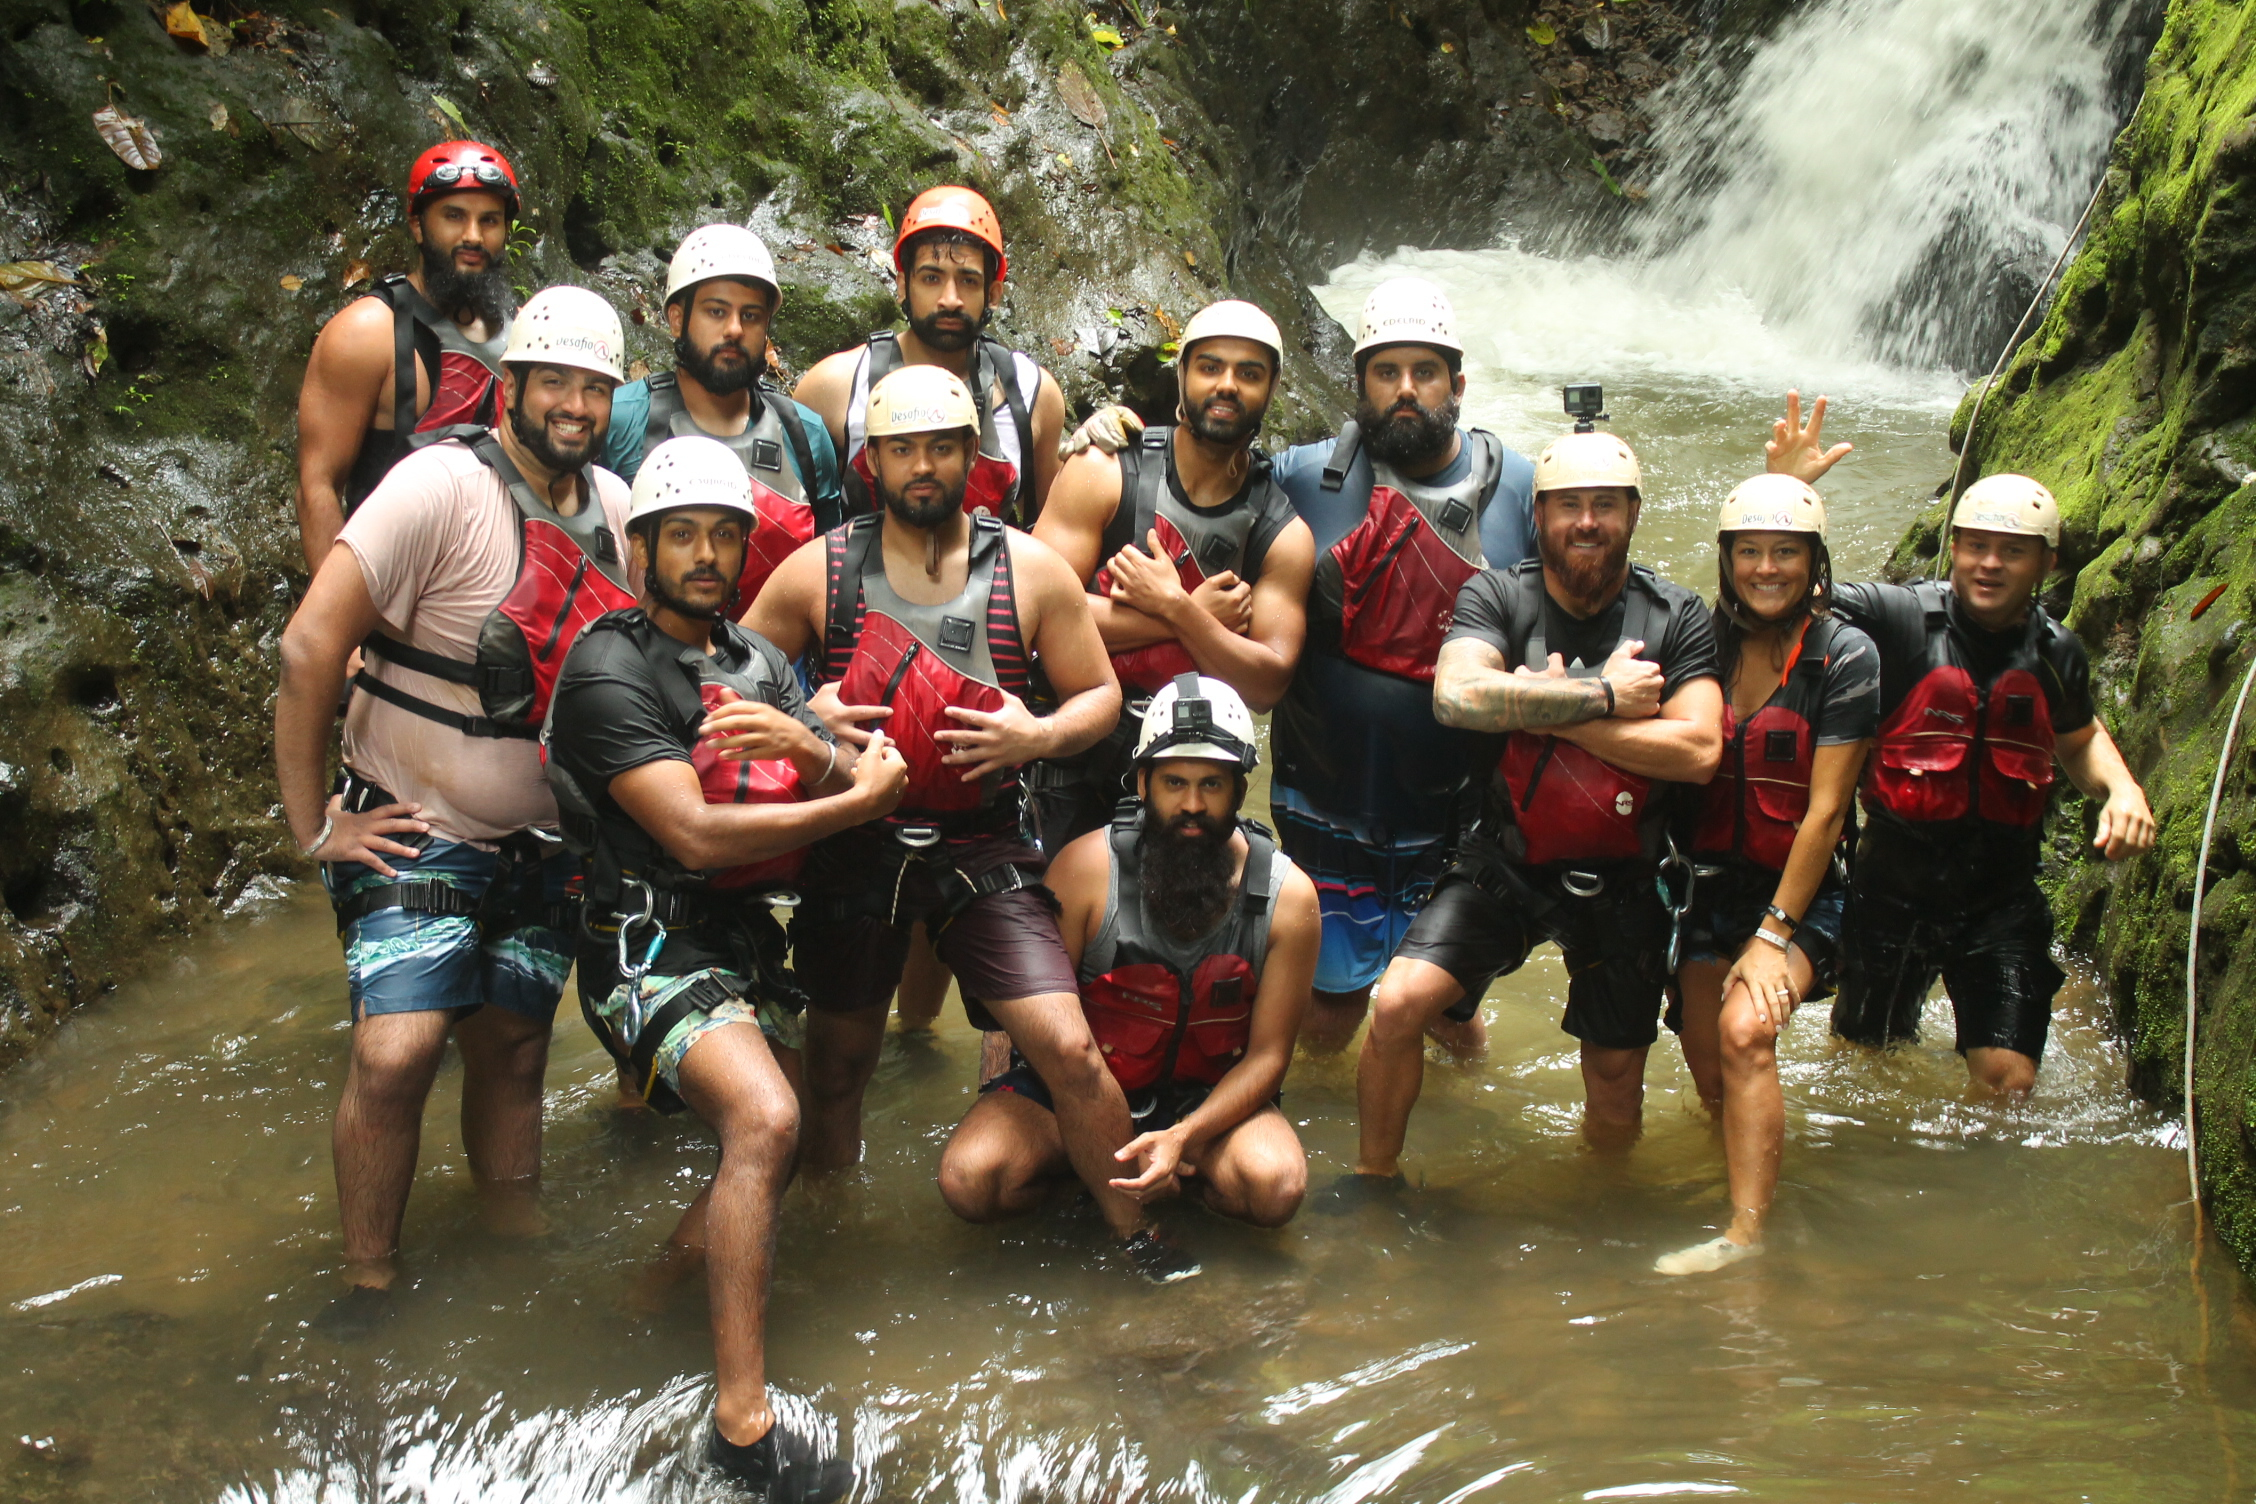 Adventure for all! The most unique activities in Costa Rica!